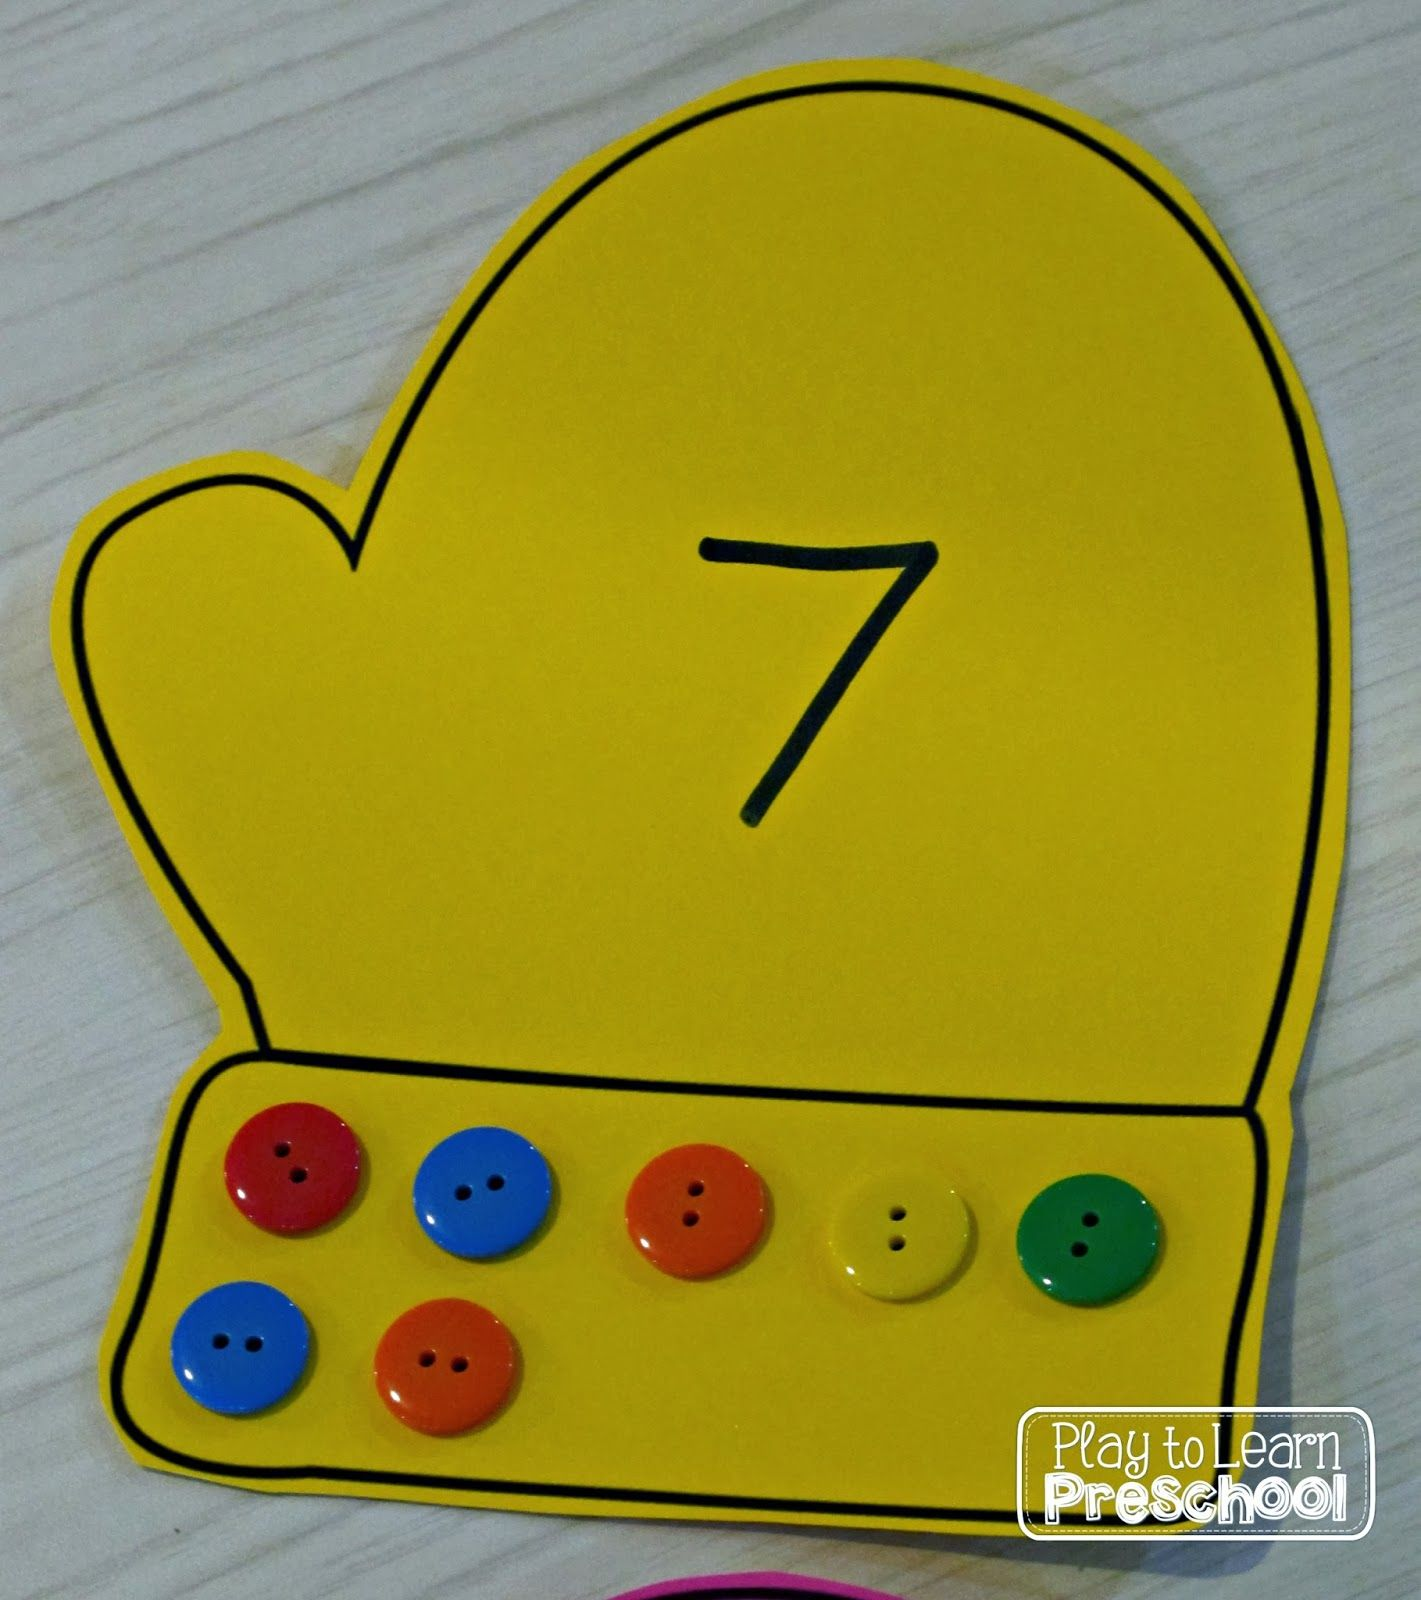 Play To Learn Preschool Mitten Button Counting